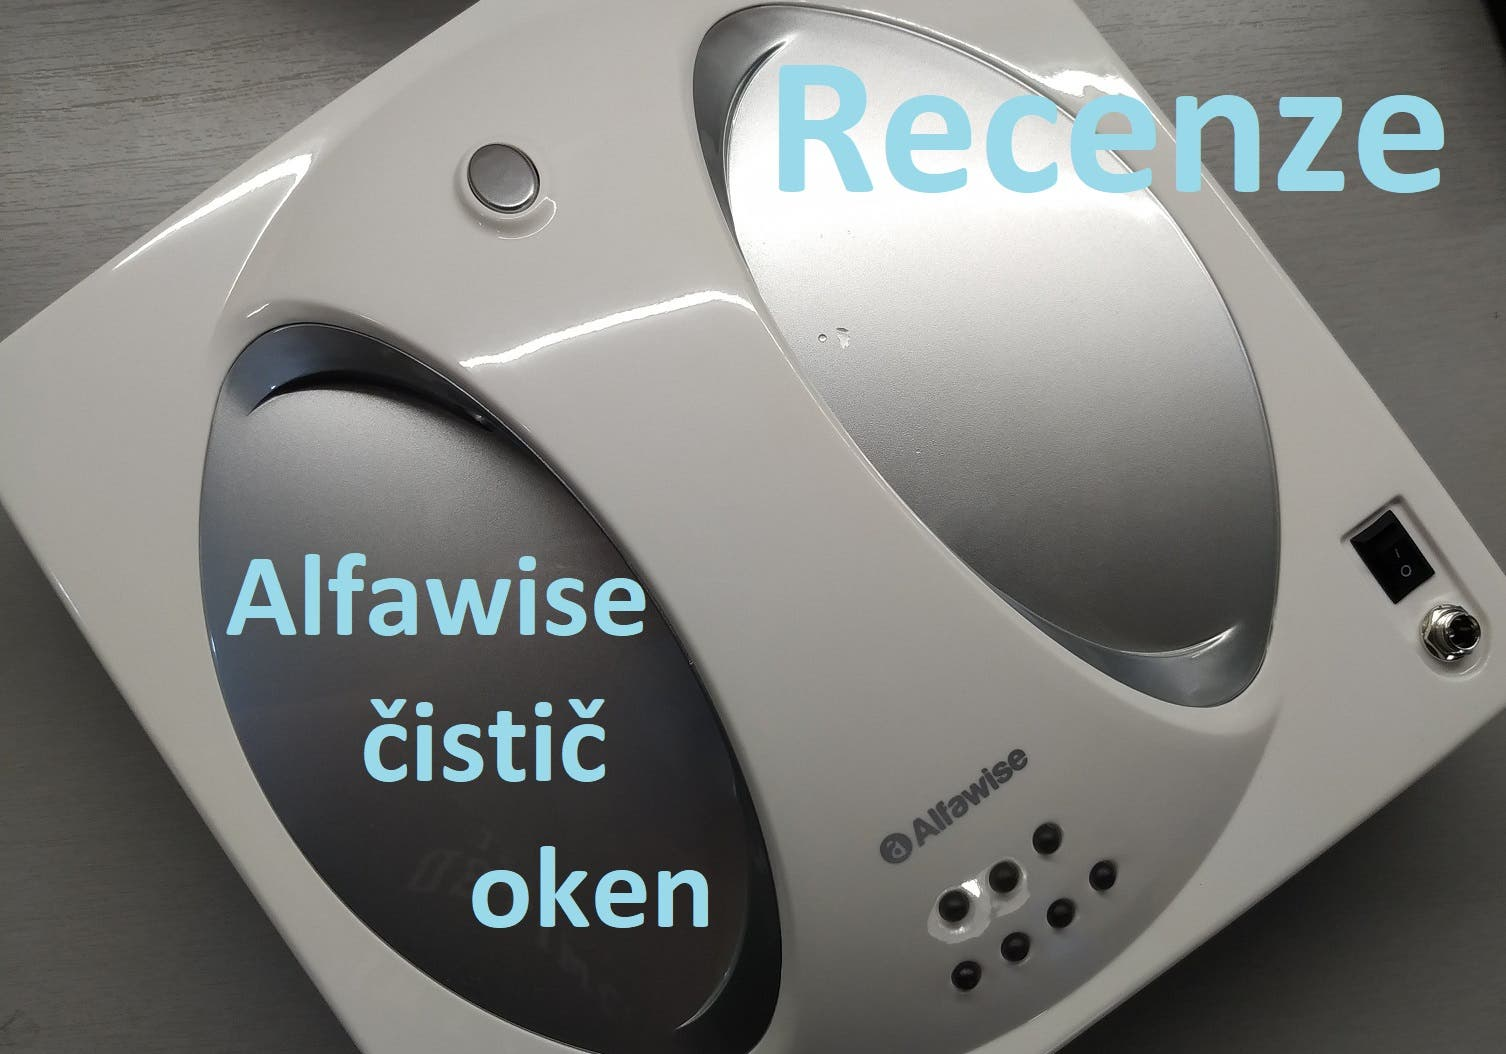 Recenze ALFAWISE WINDOW CLEANER